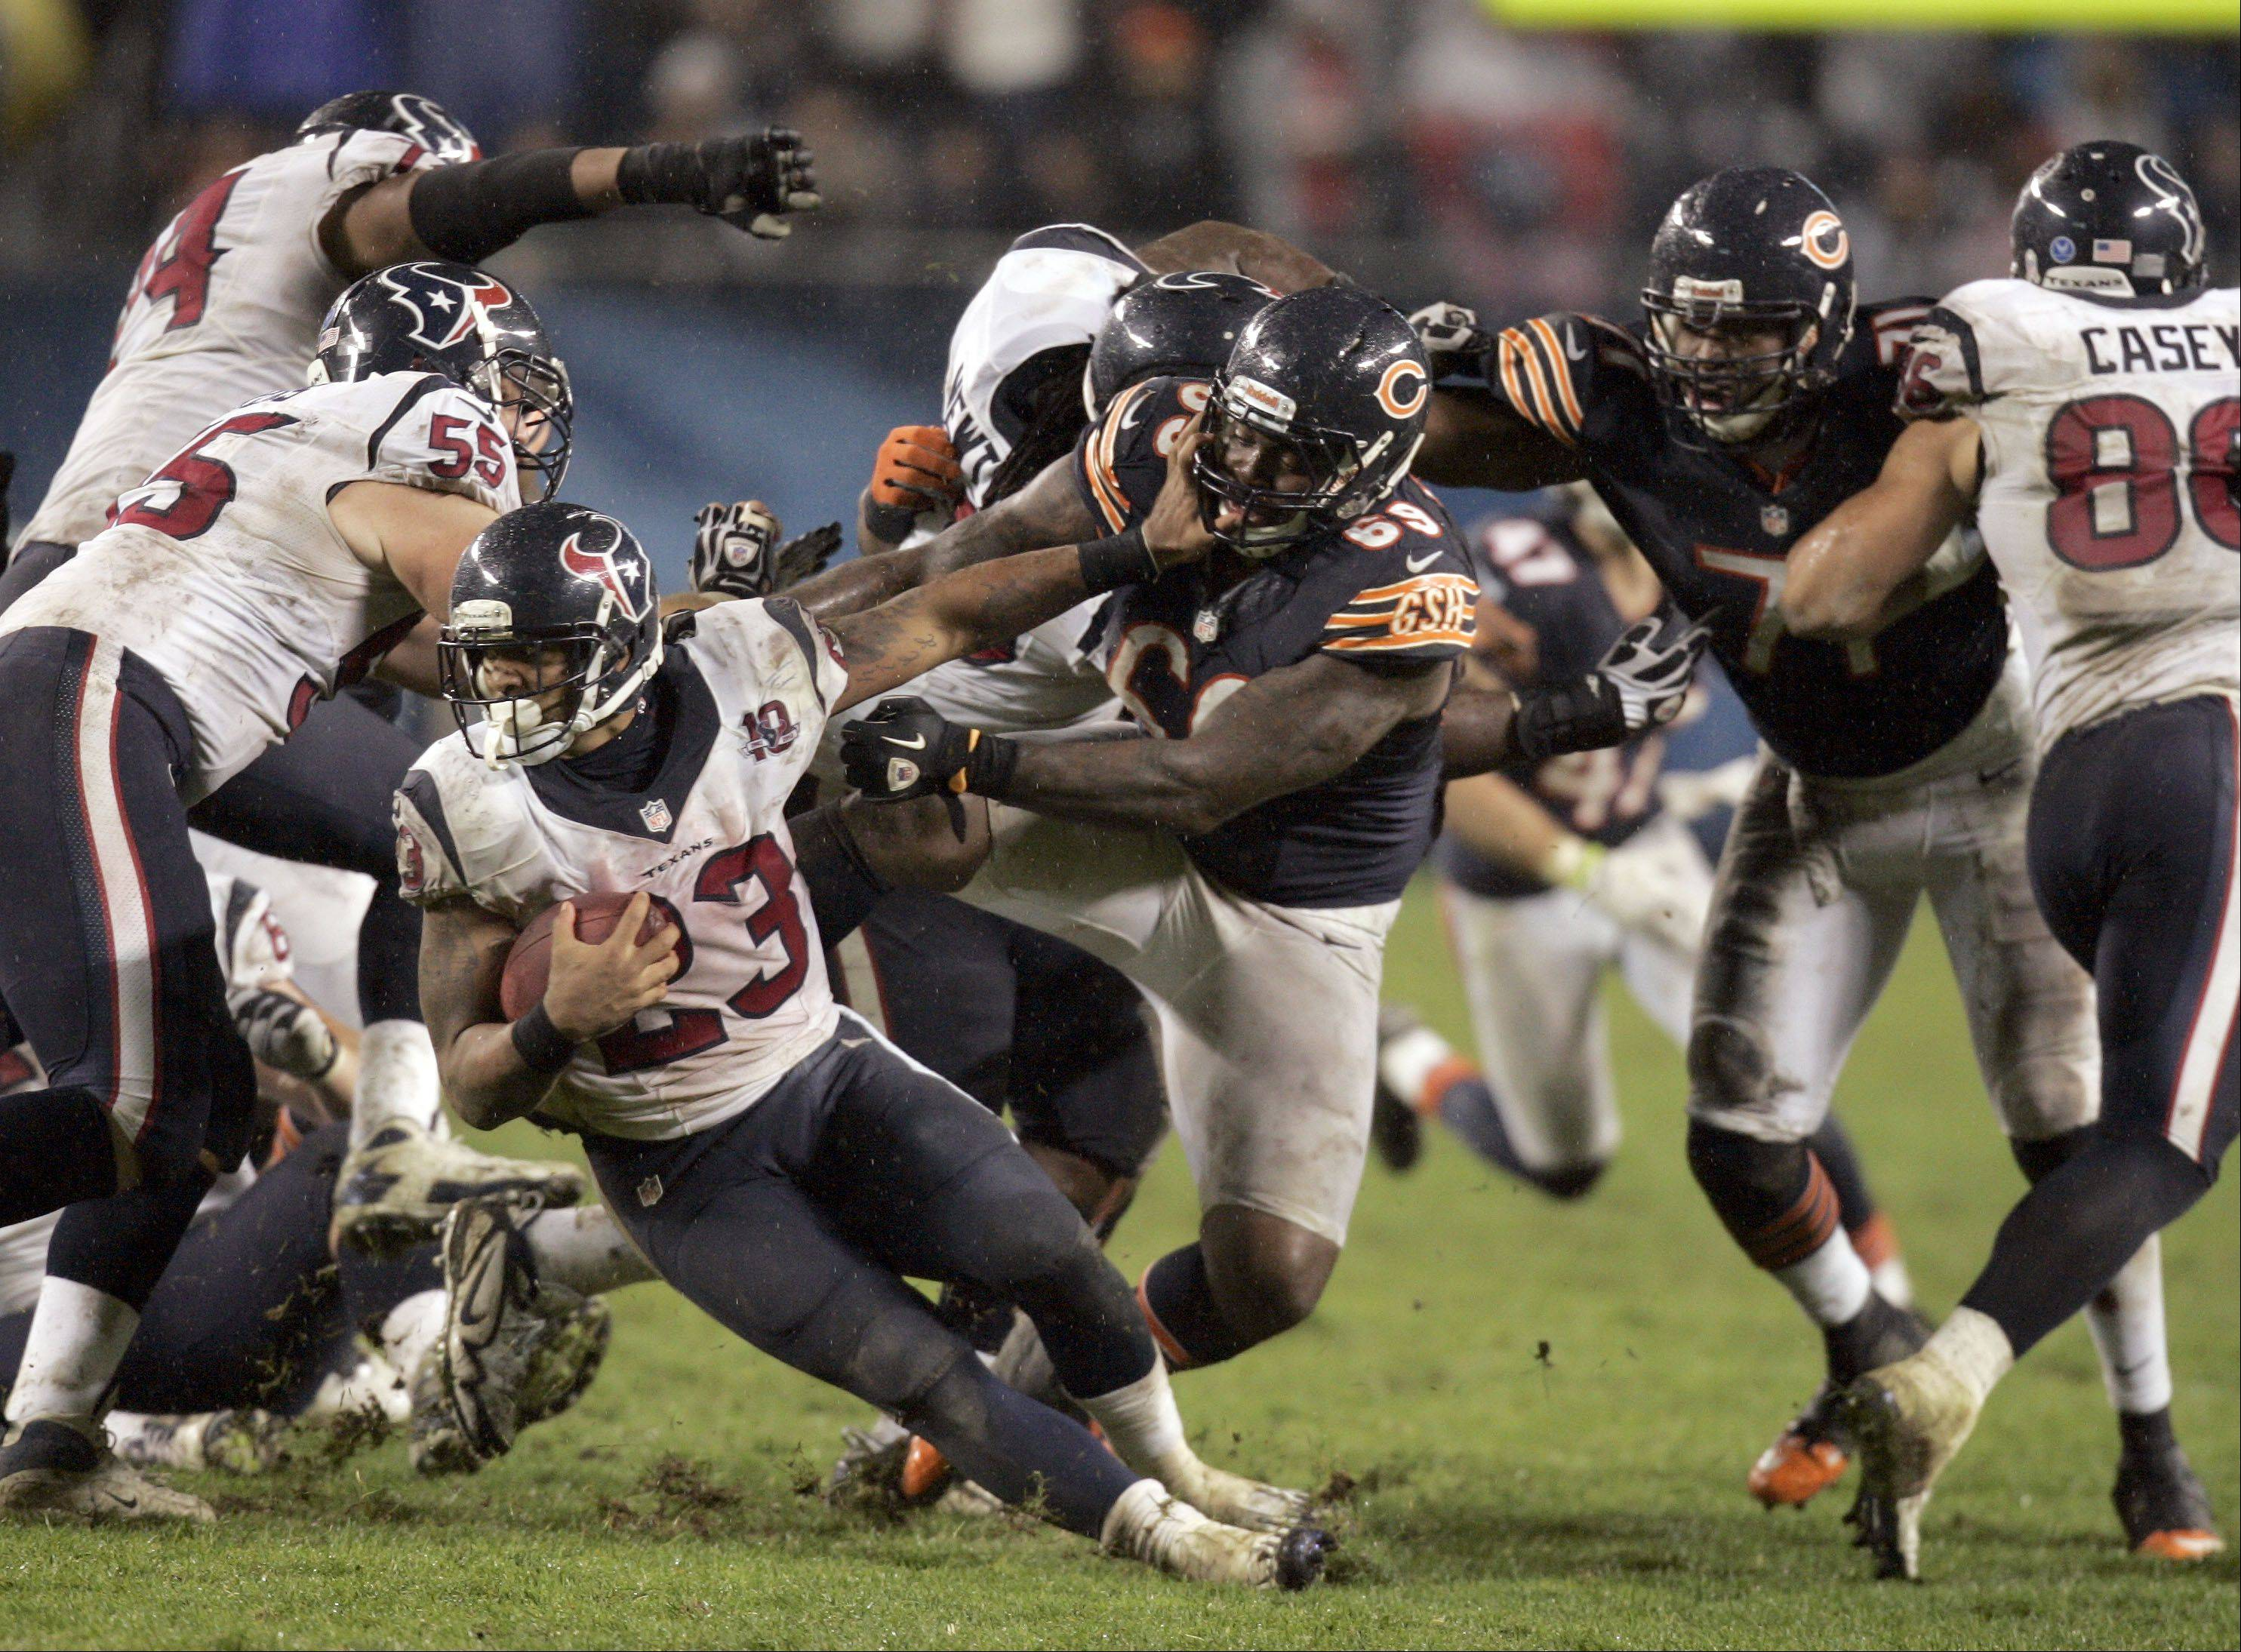 Houston Texans running back Arian Foster (23) tries to make ground up as Chicago Bears defensive tackle Henry Melton (69) brings the hurt during the game Sunday November 11, 2012 at Soldier Field in Chicago.